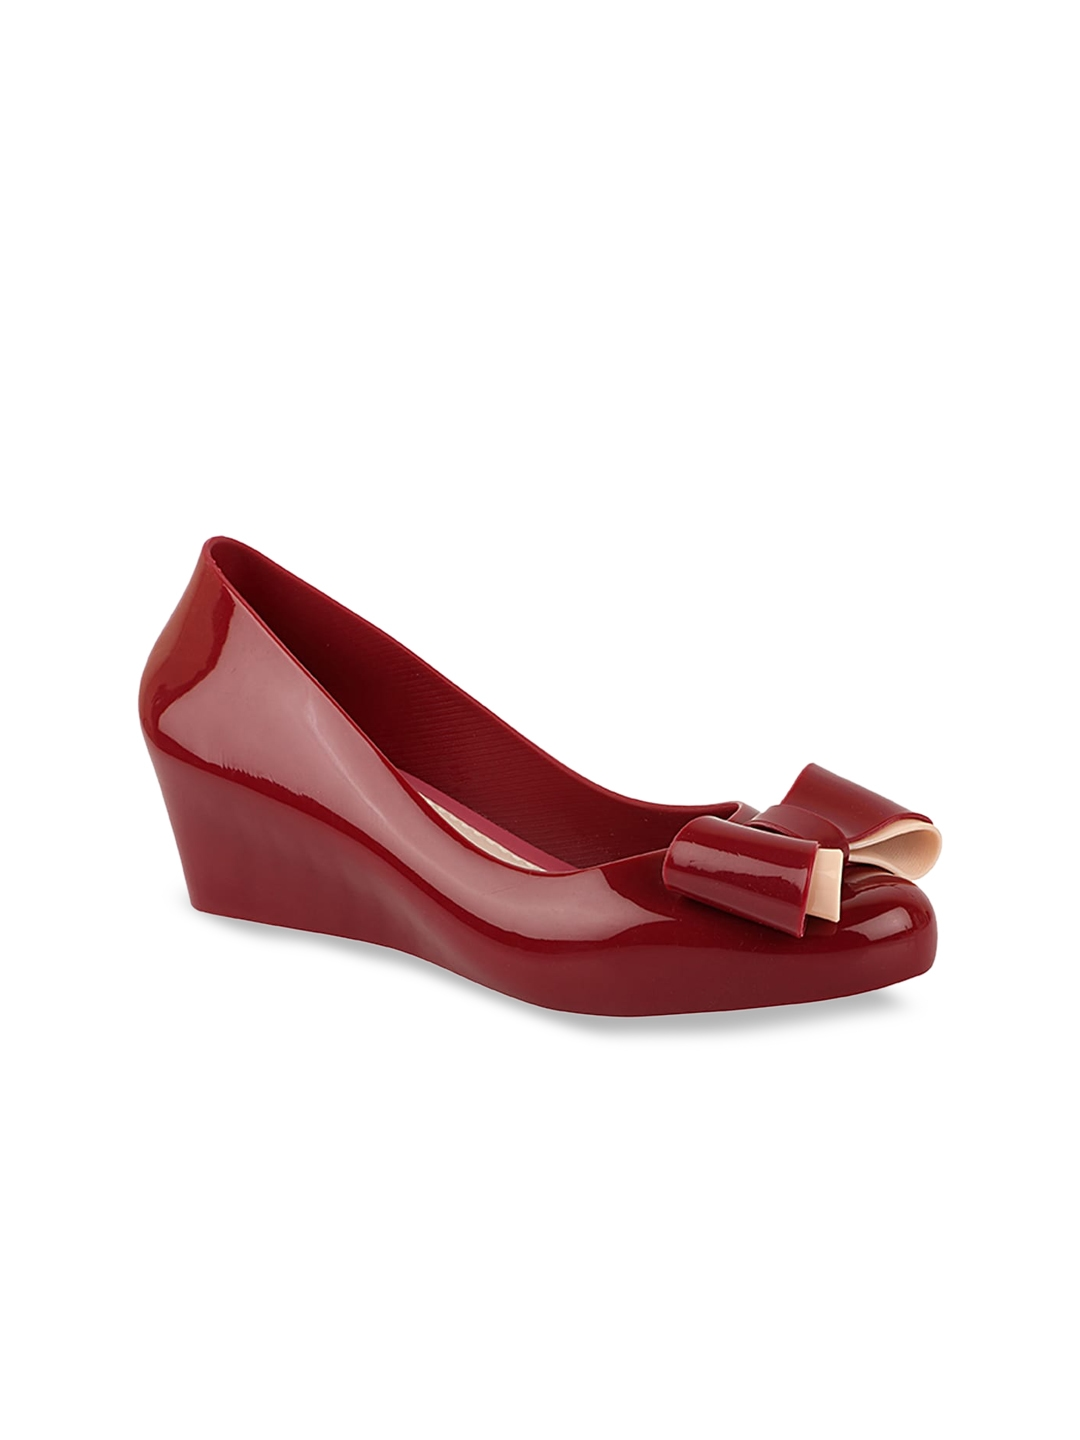 Shoetopia Red Wedge Pumps with Bows